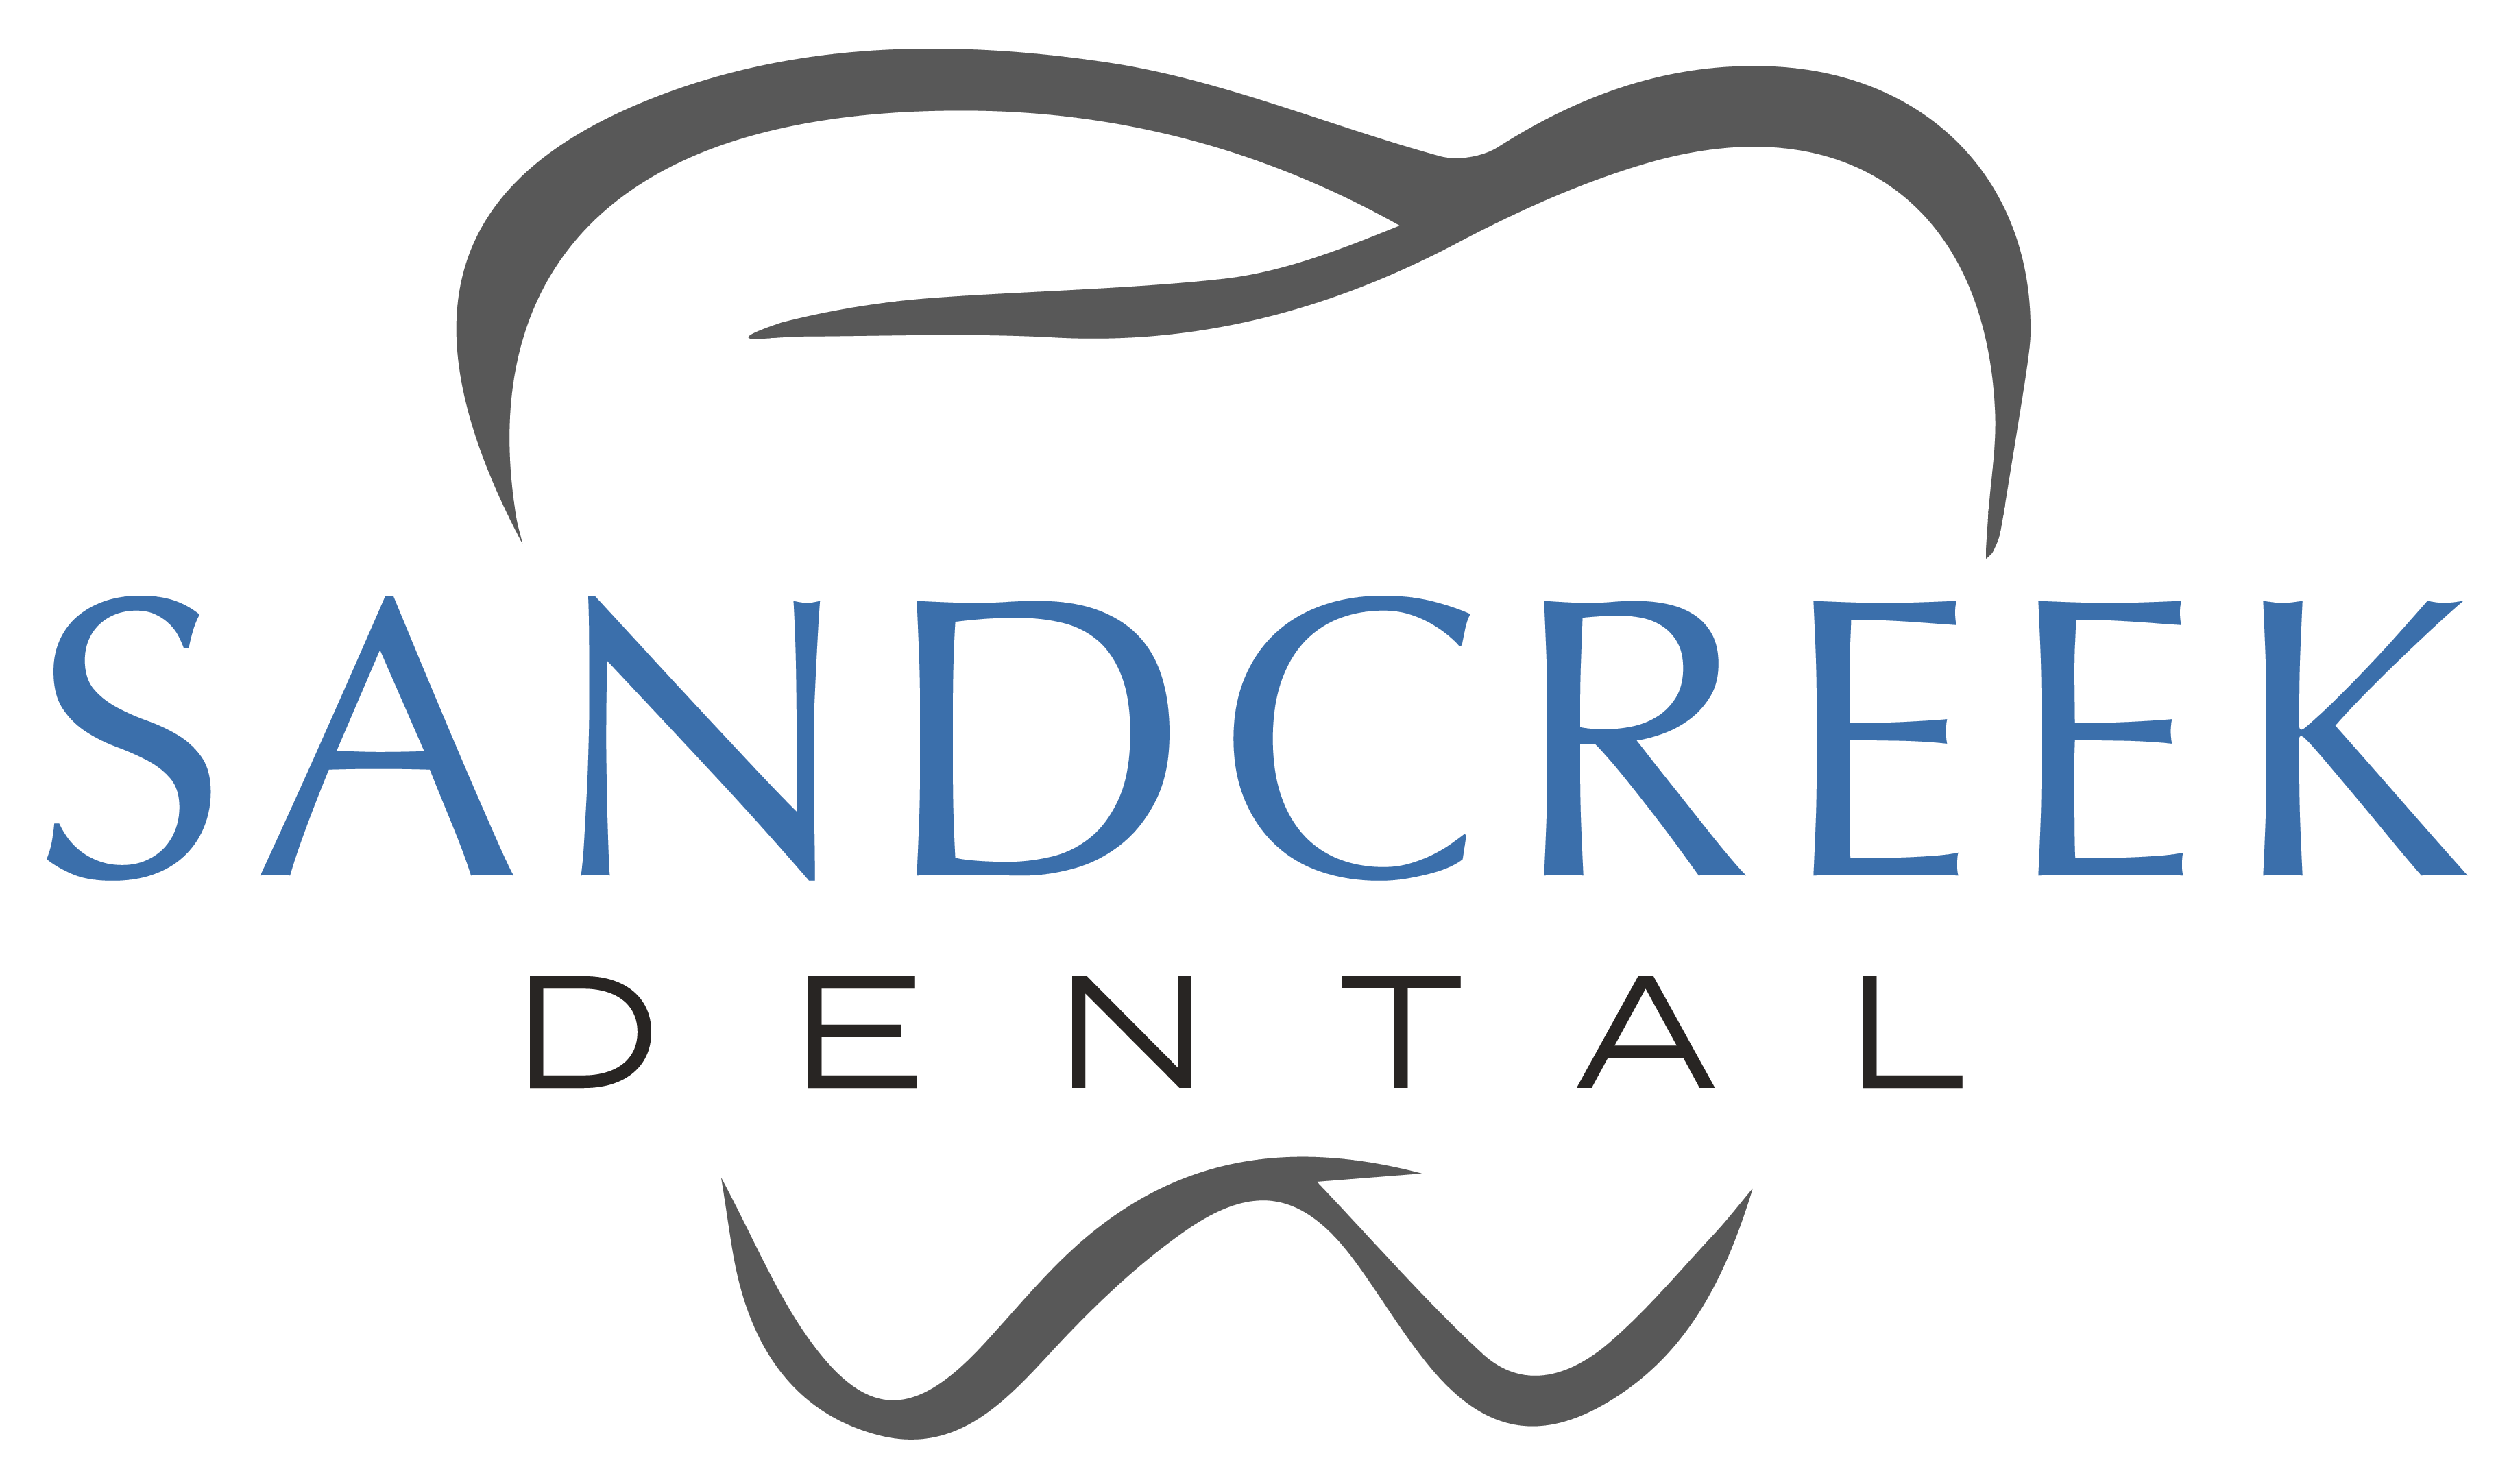 Sandcreek Dental